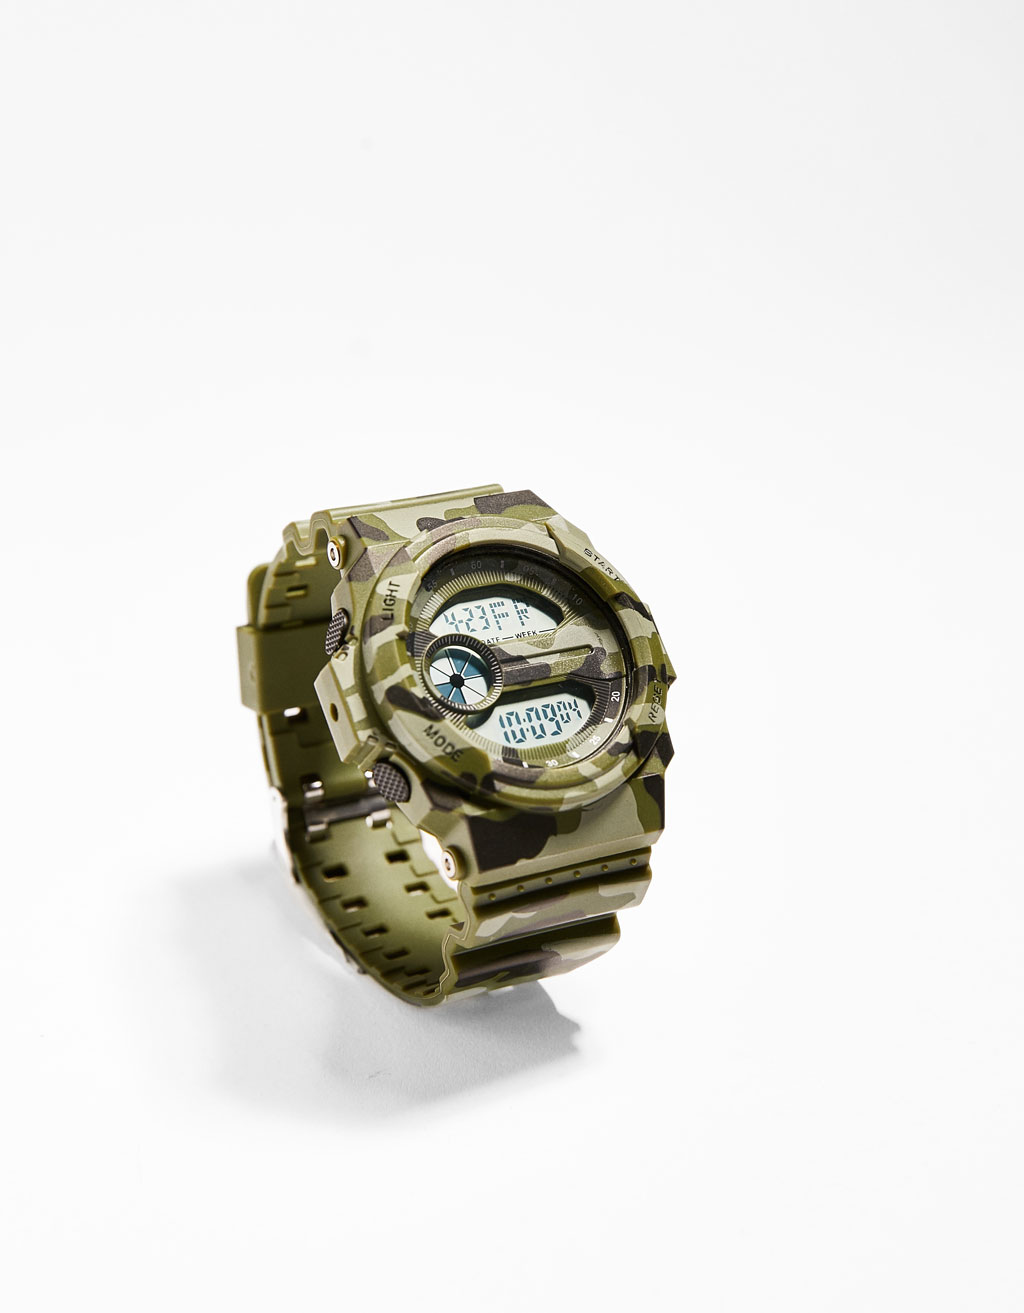 Camouflage print digital watch